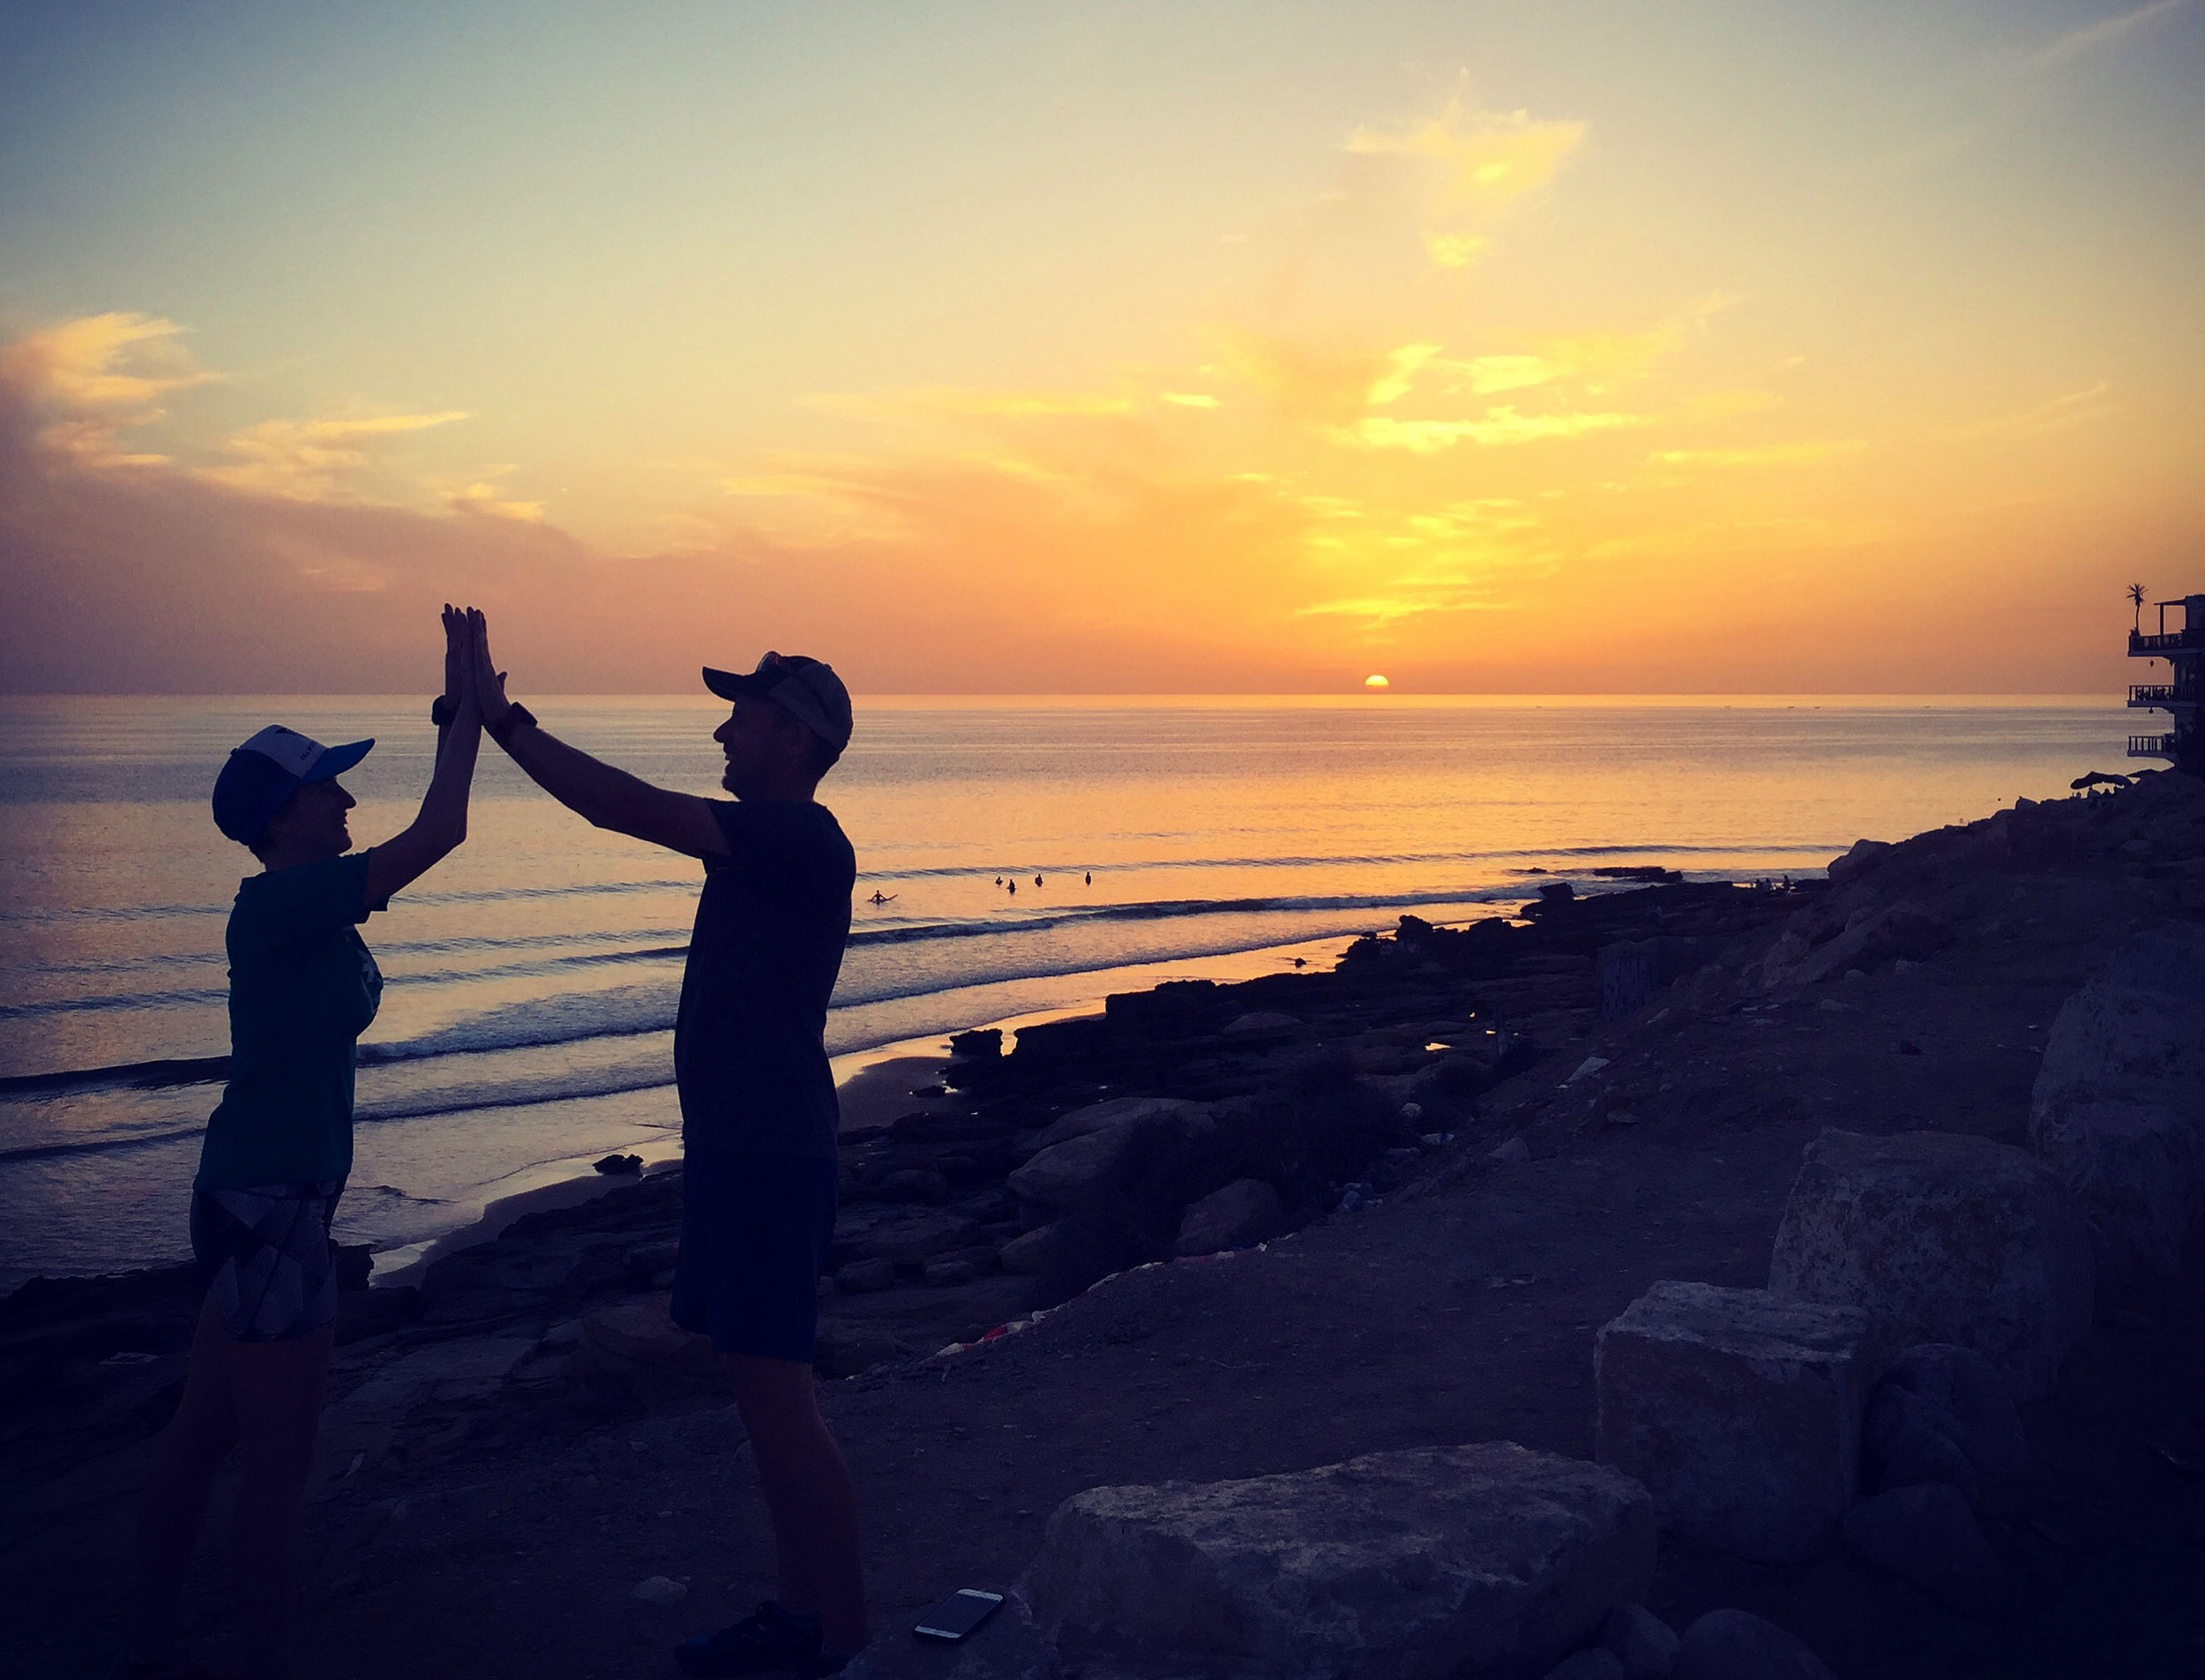 Claire and Joel finish sunset bonus miles on the last night in Morocco, wrapping up a personal weekly distance record (100km!) for Claire!